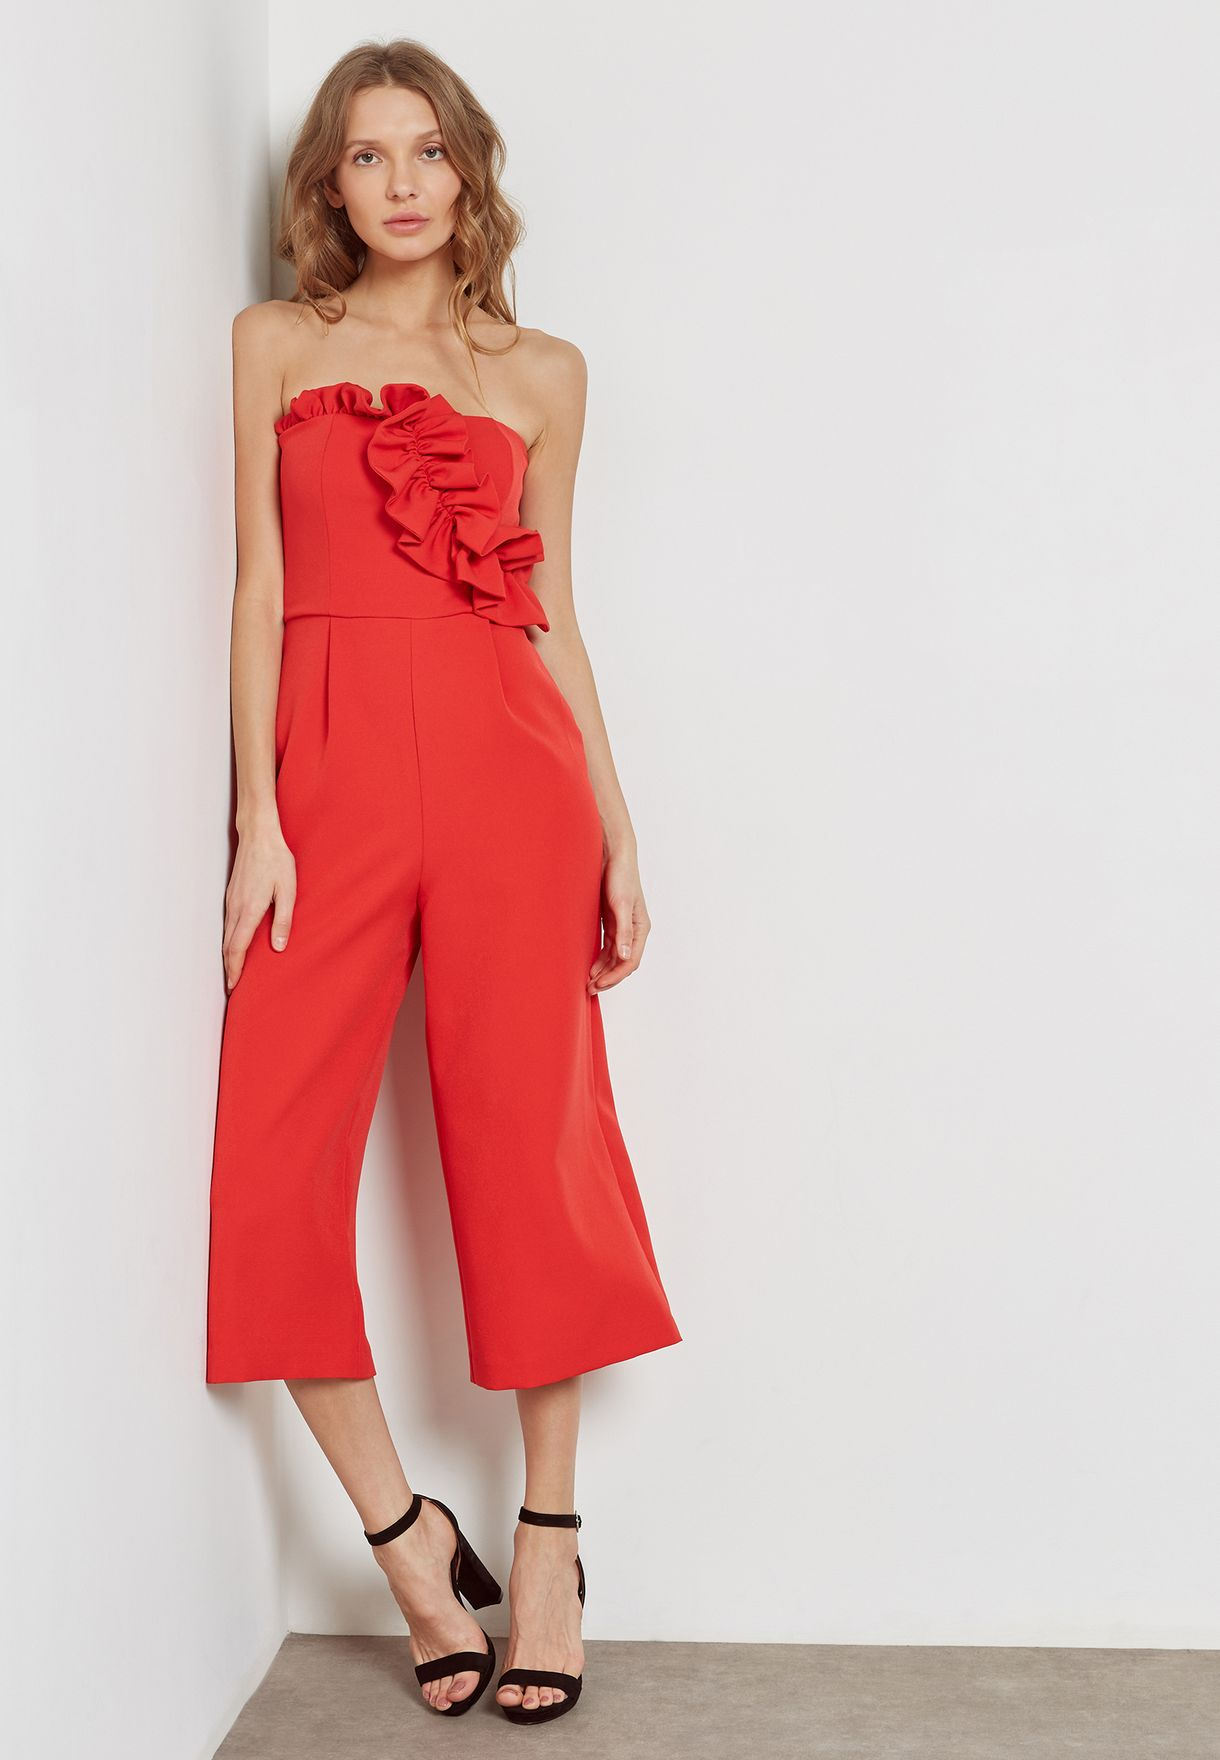 3ddddb75b10 Shop Topshop red Bandeau Jumpsuit 36J01NRED for Women in Qatar -  TO856AT70AAJ